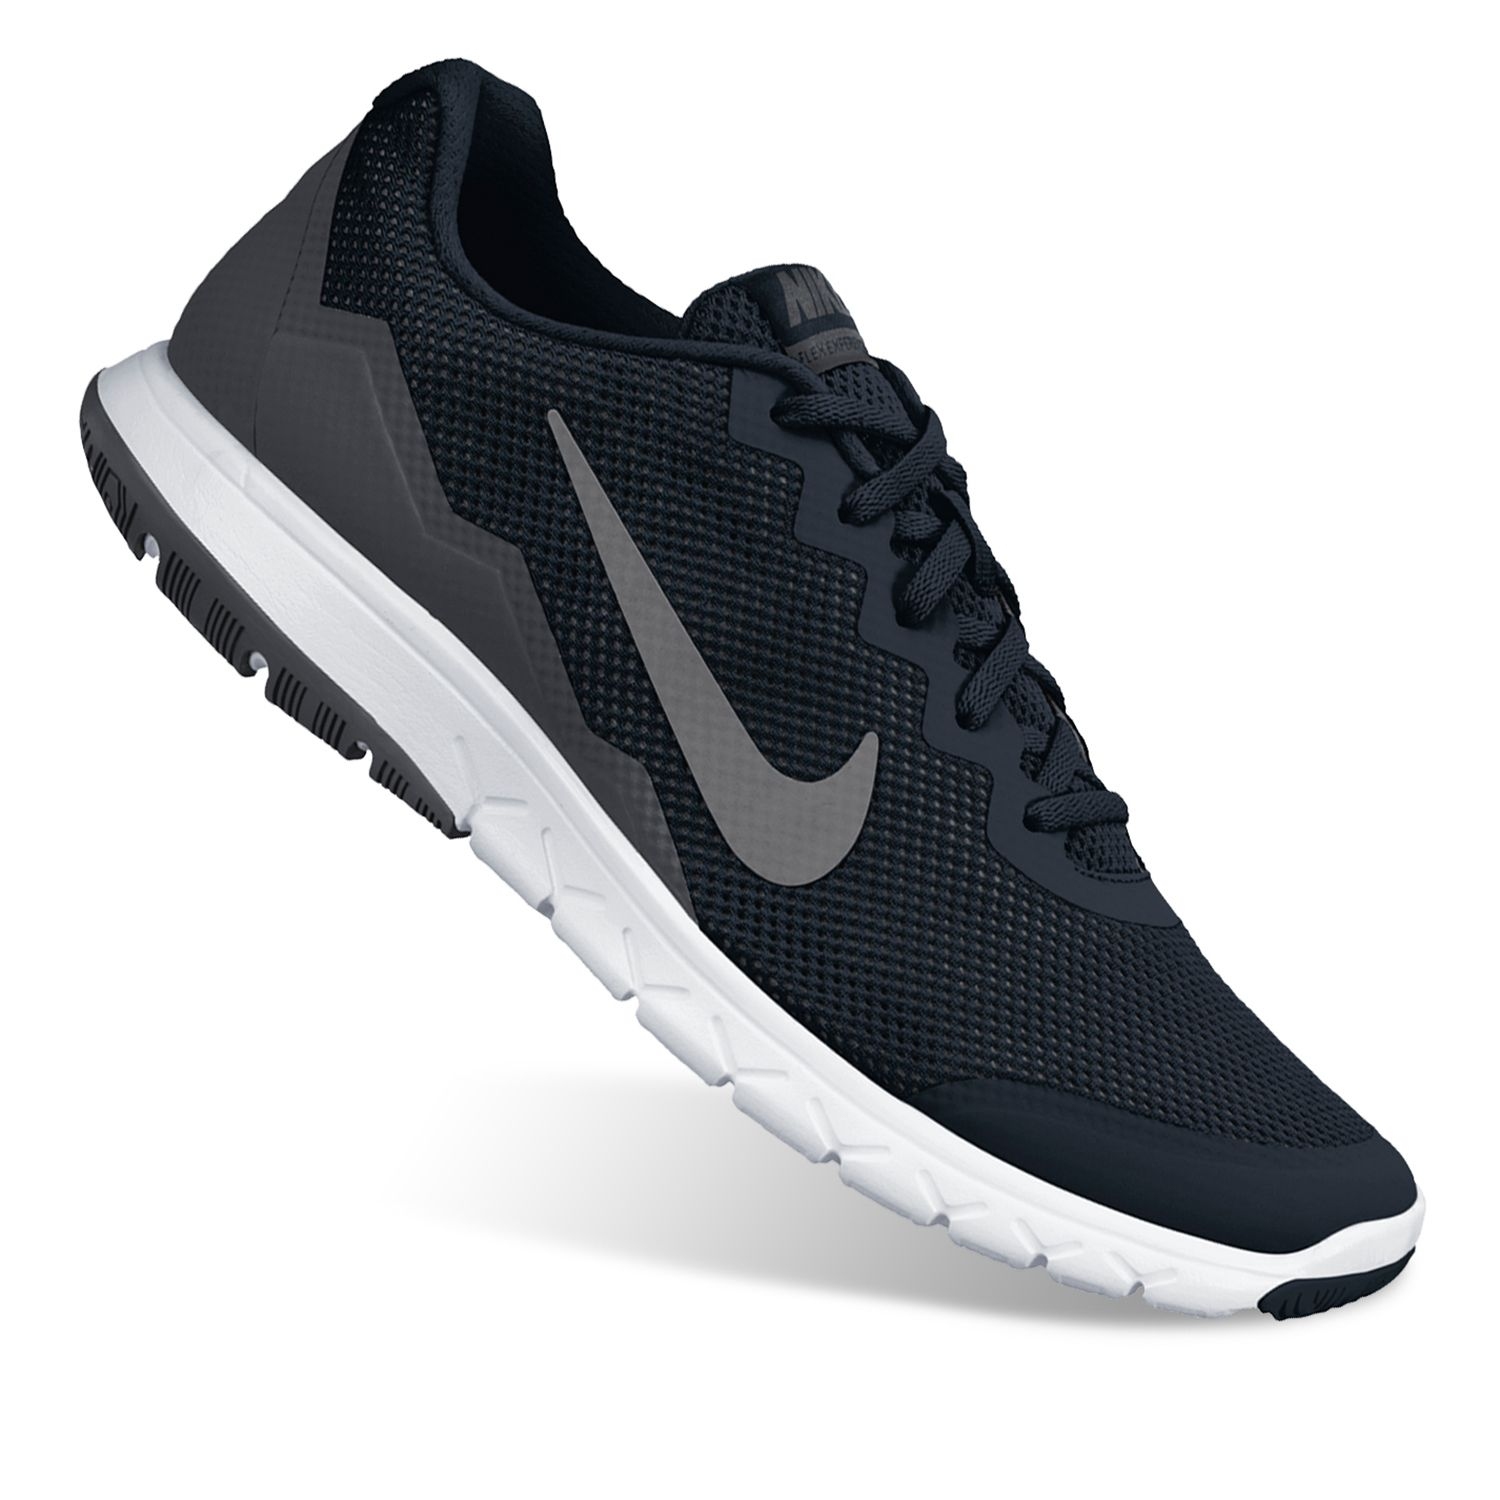 These awesome women's Nike Revolution 4 running shoes are constructed from lightweight, single-layer mesh. Their minimal design contains no-sew overlays and soft foam beneath the foot for a .